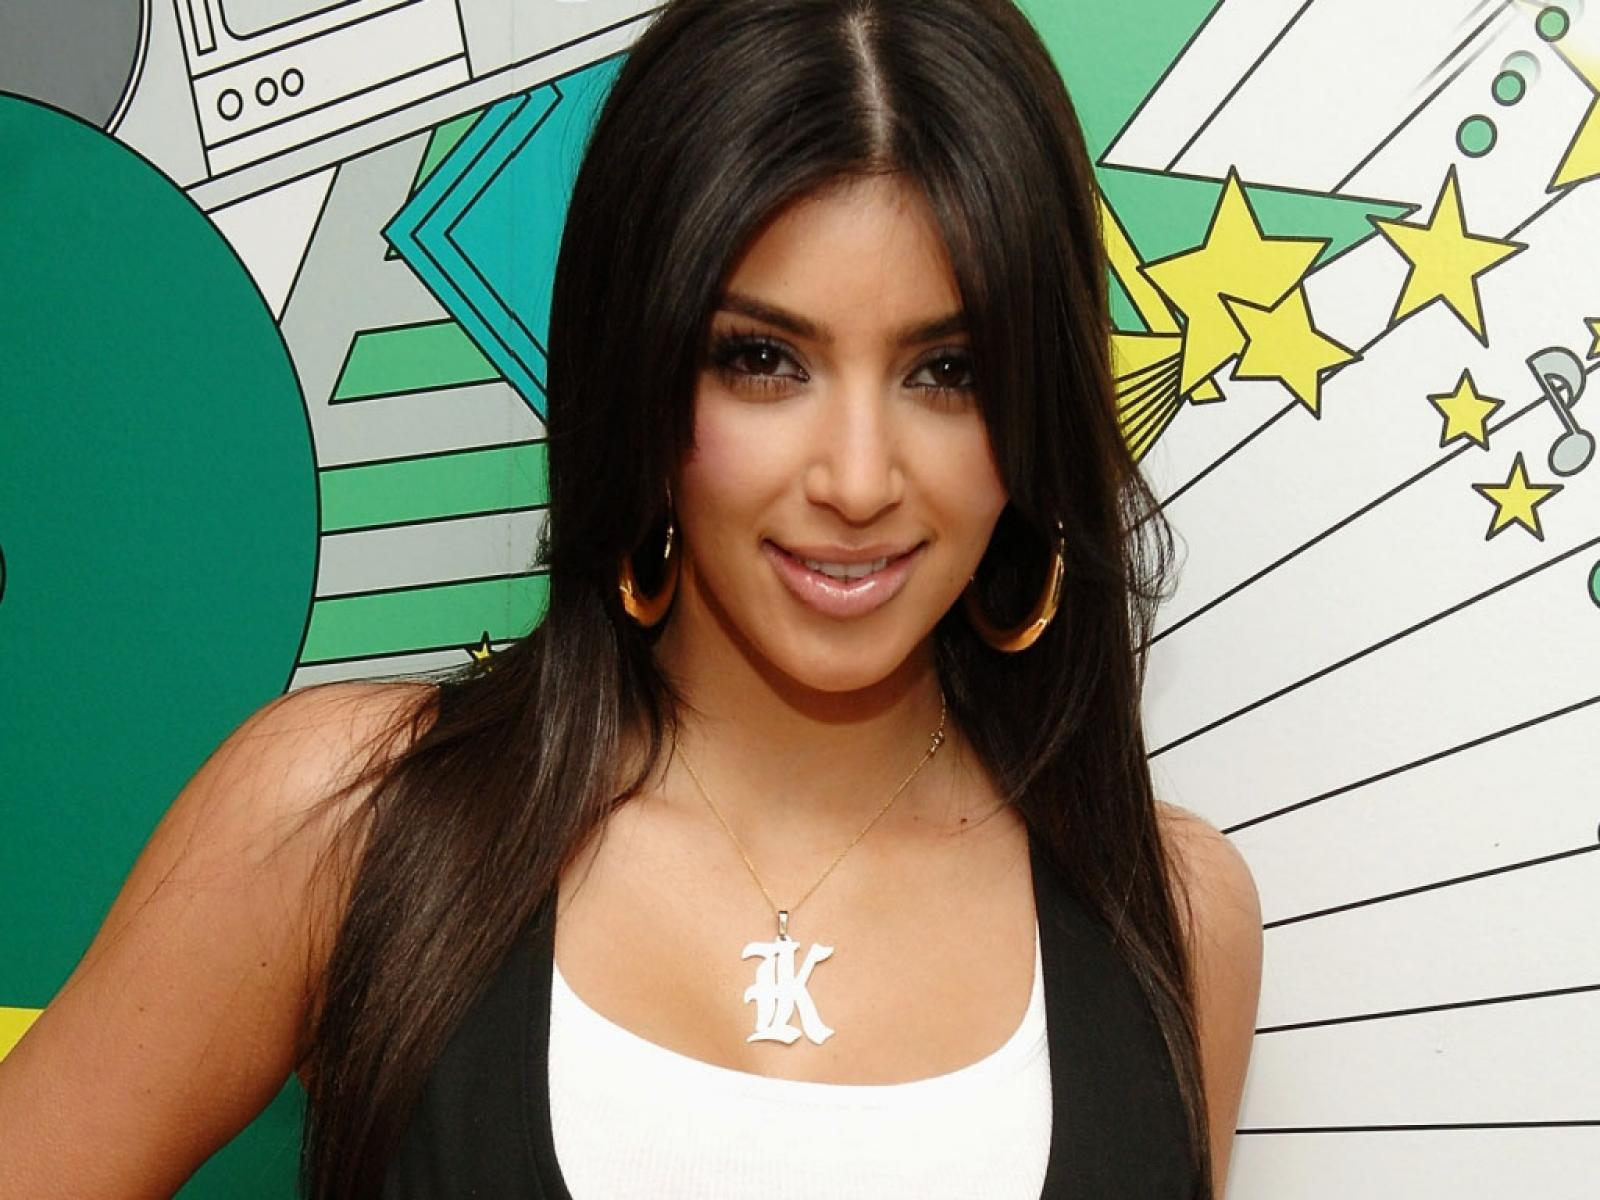 desktop kim kardashian wallpapers kim kardashian wallpaper hd 3jpg 1600x1200